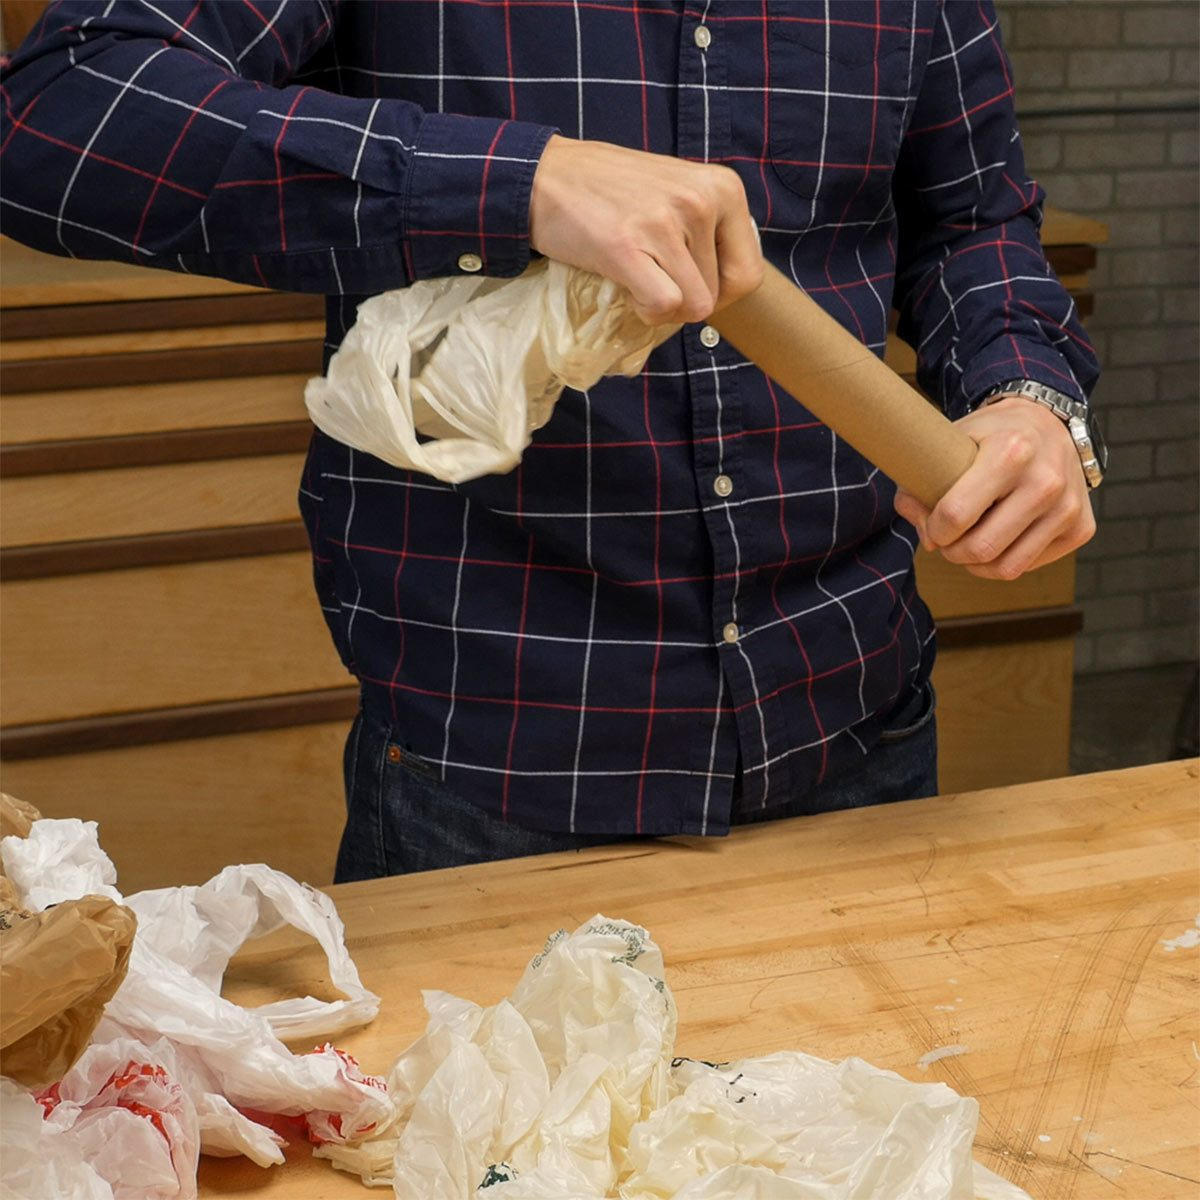 stuffing plastic bags in paper towel roll